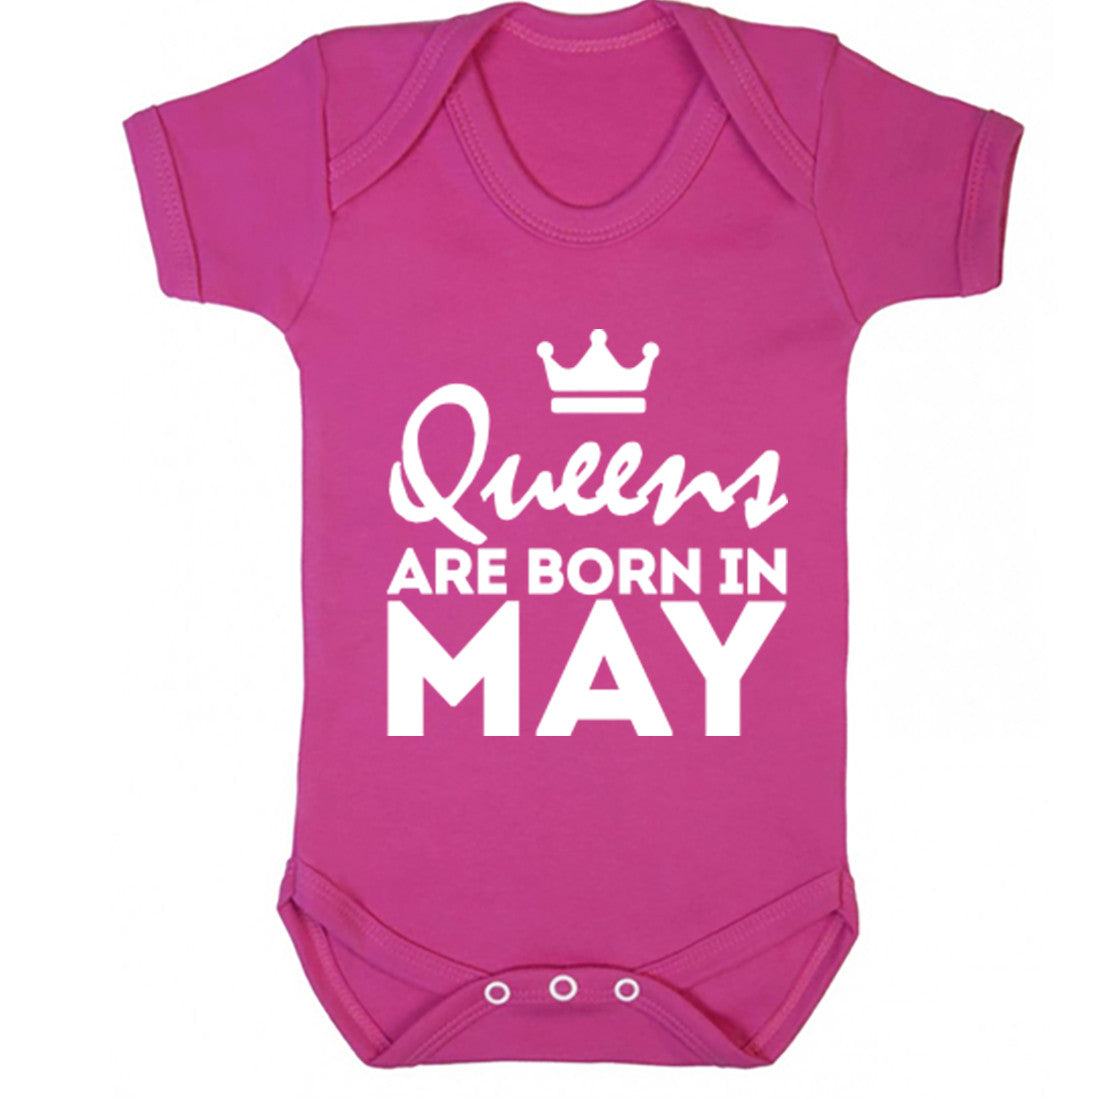 Queens Are Born In May Baby Vest K1676 - Illustrated Identity Ltd.